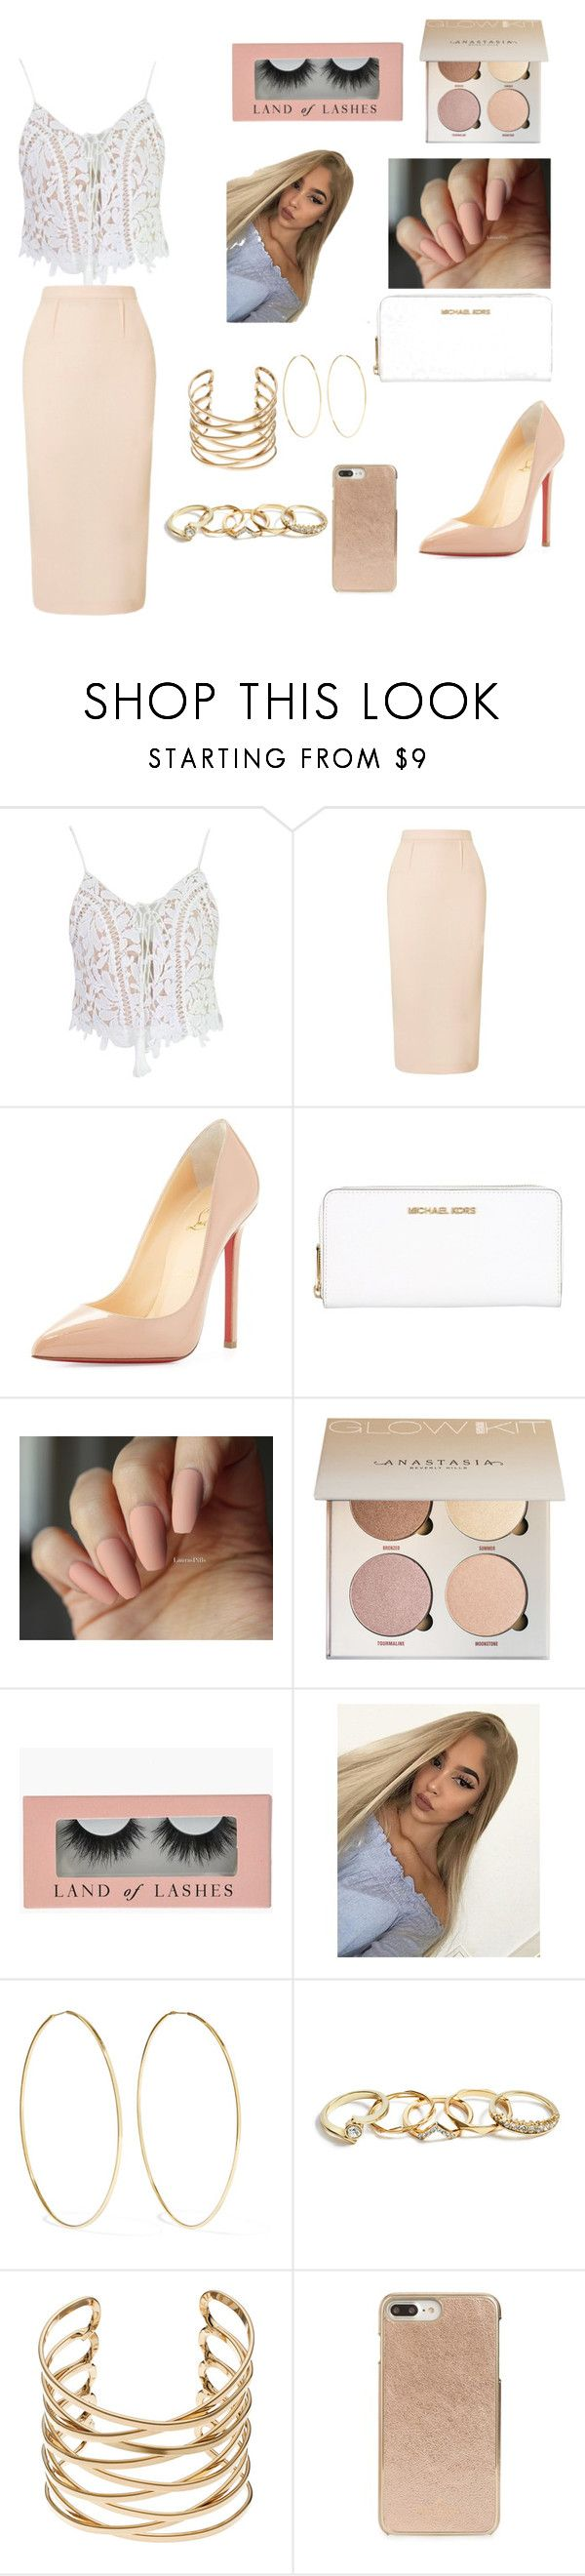 """""""Nude days"""" by emily-bielefeld ❤ liked on Polyvore featuring WithChic, Roland Mouret, Christian Louboutin, MICHAEL Michael Kors, Magda Butrym, GUESS and Kate Spade"""